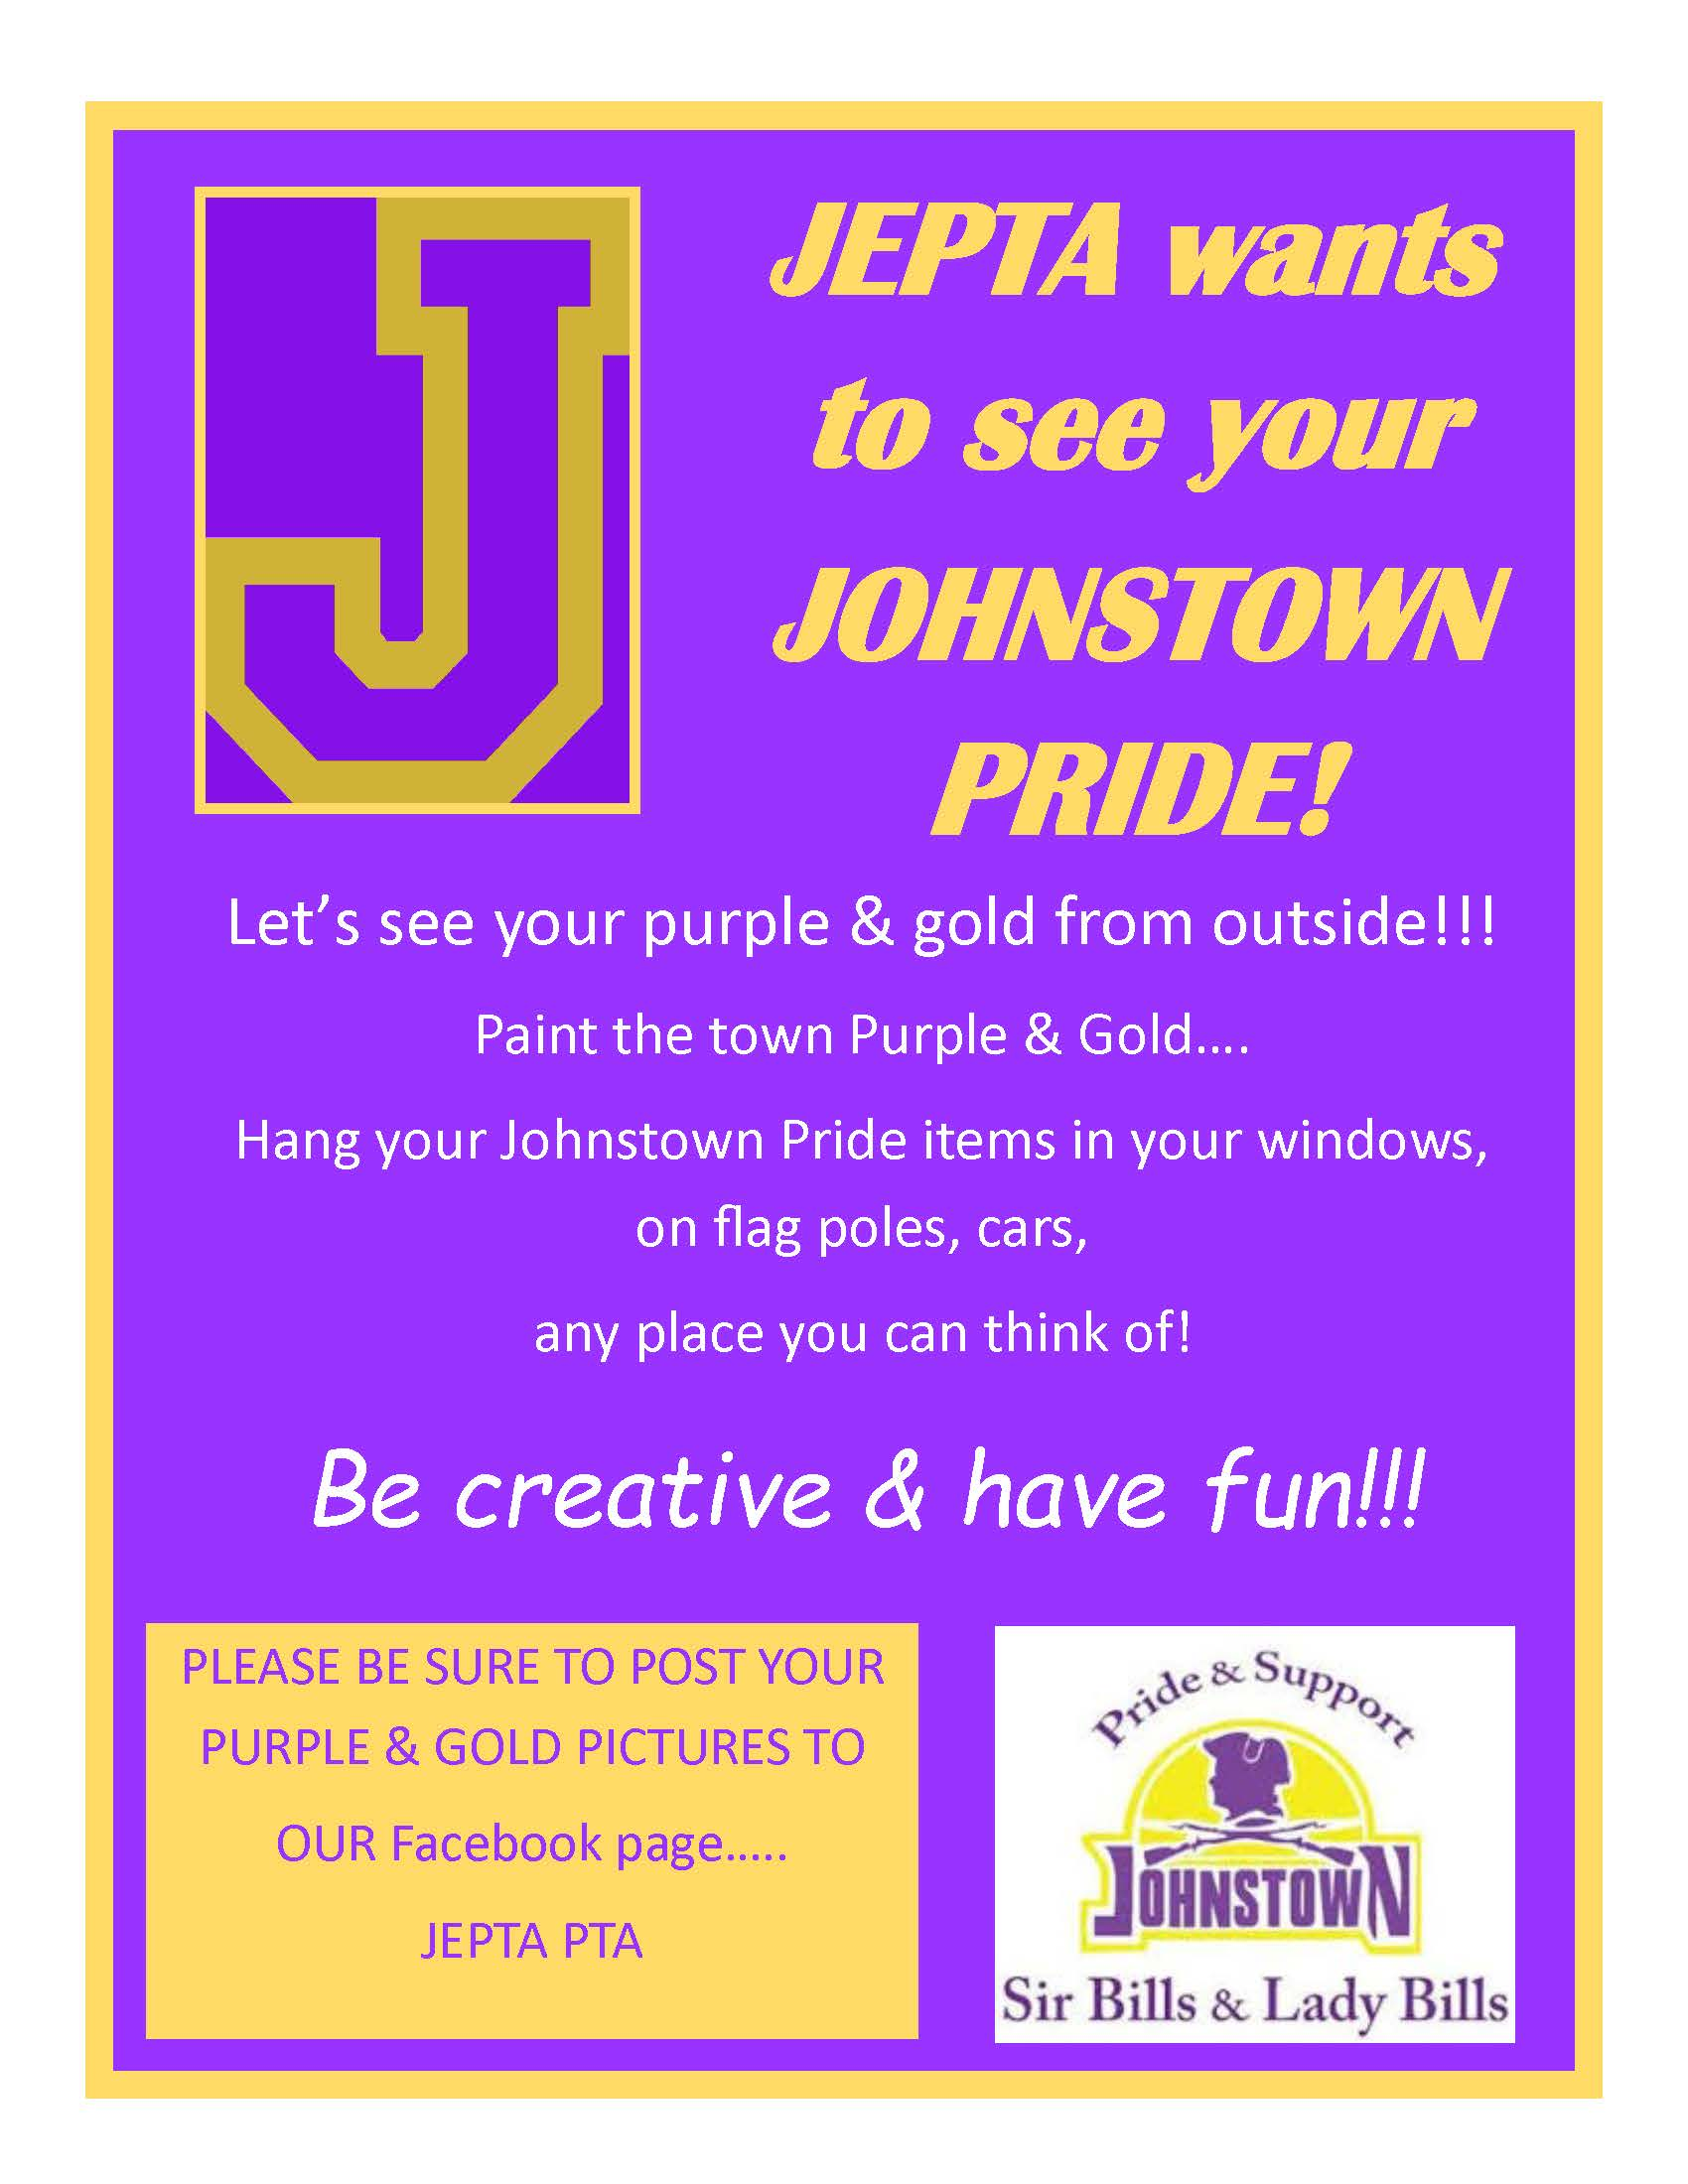 Poster: JEPTA wants to see your Johnstown Pride! Let's see your purple & gold from outside!!! Paint the town purple & gold... hang your Johnstown Pride items in your windows, on flag poles, cars, any place you can think of! Be creative and have fun!!! Be sure to post your Purple & Gold pictures to the JEPTA PTA Facebook page. Pride & Support Johnstown Sir Bills & Lady Bills